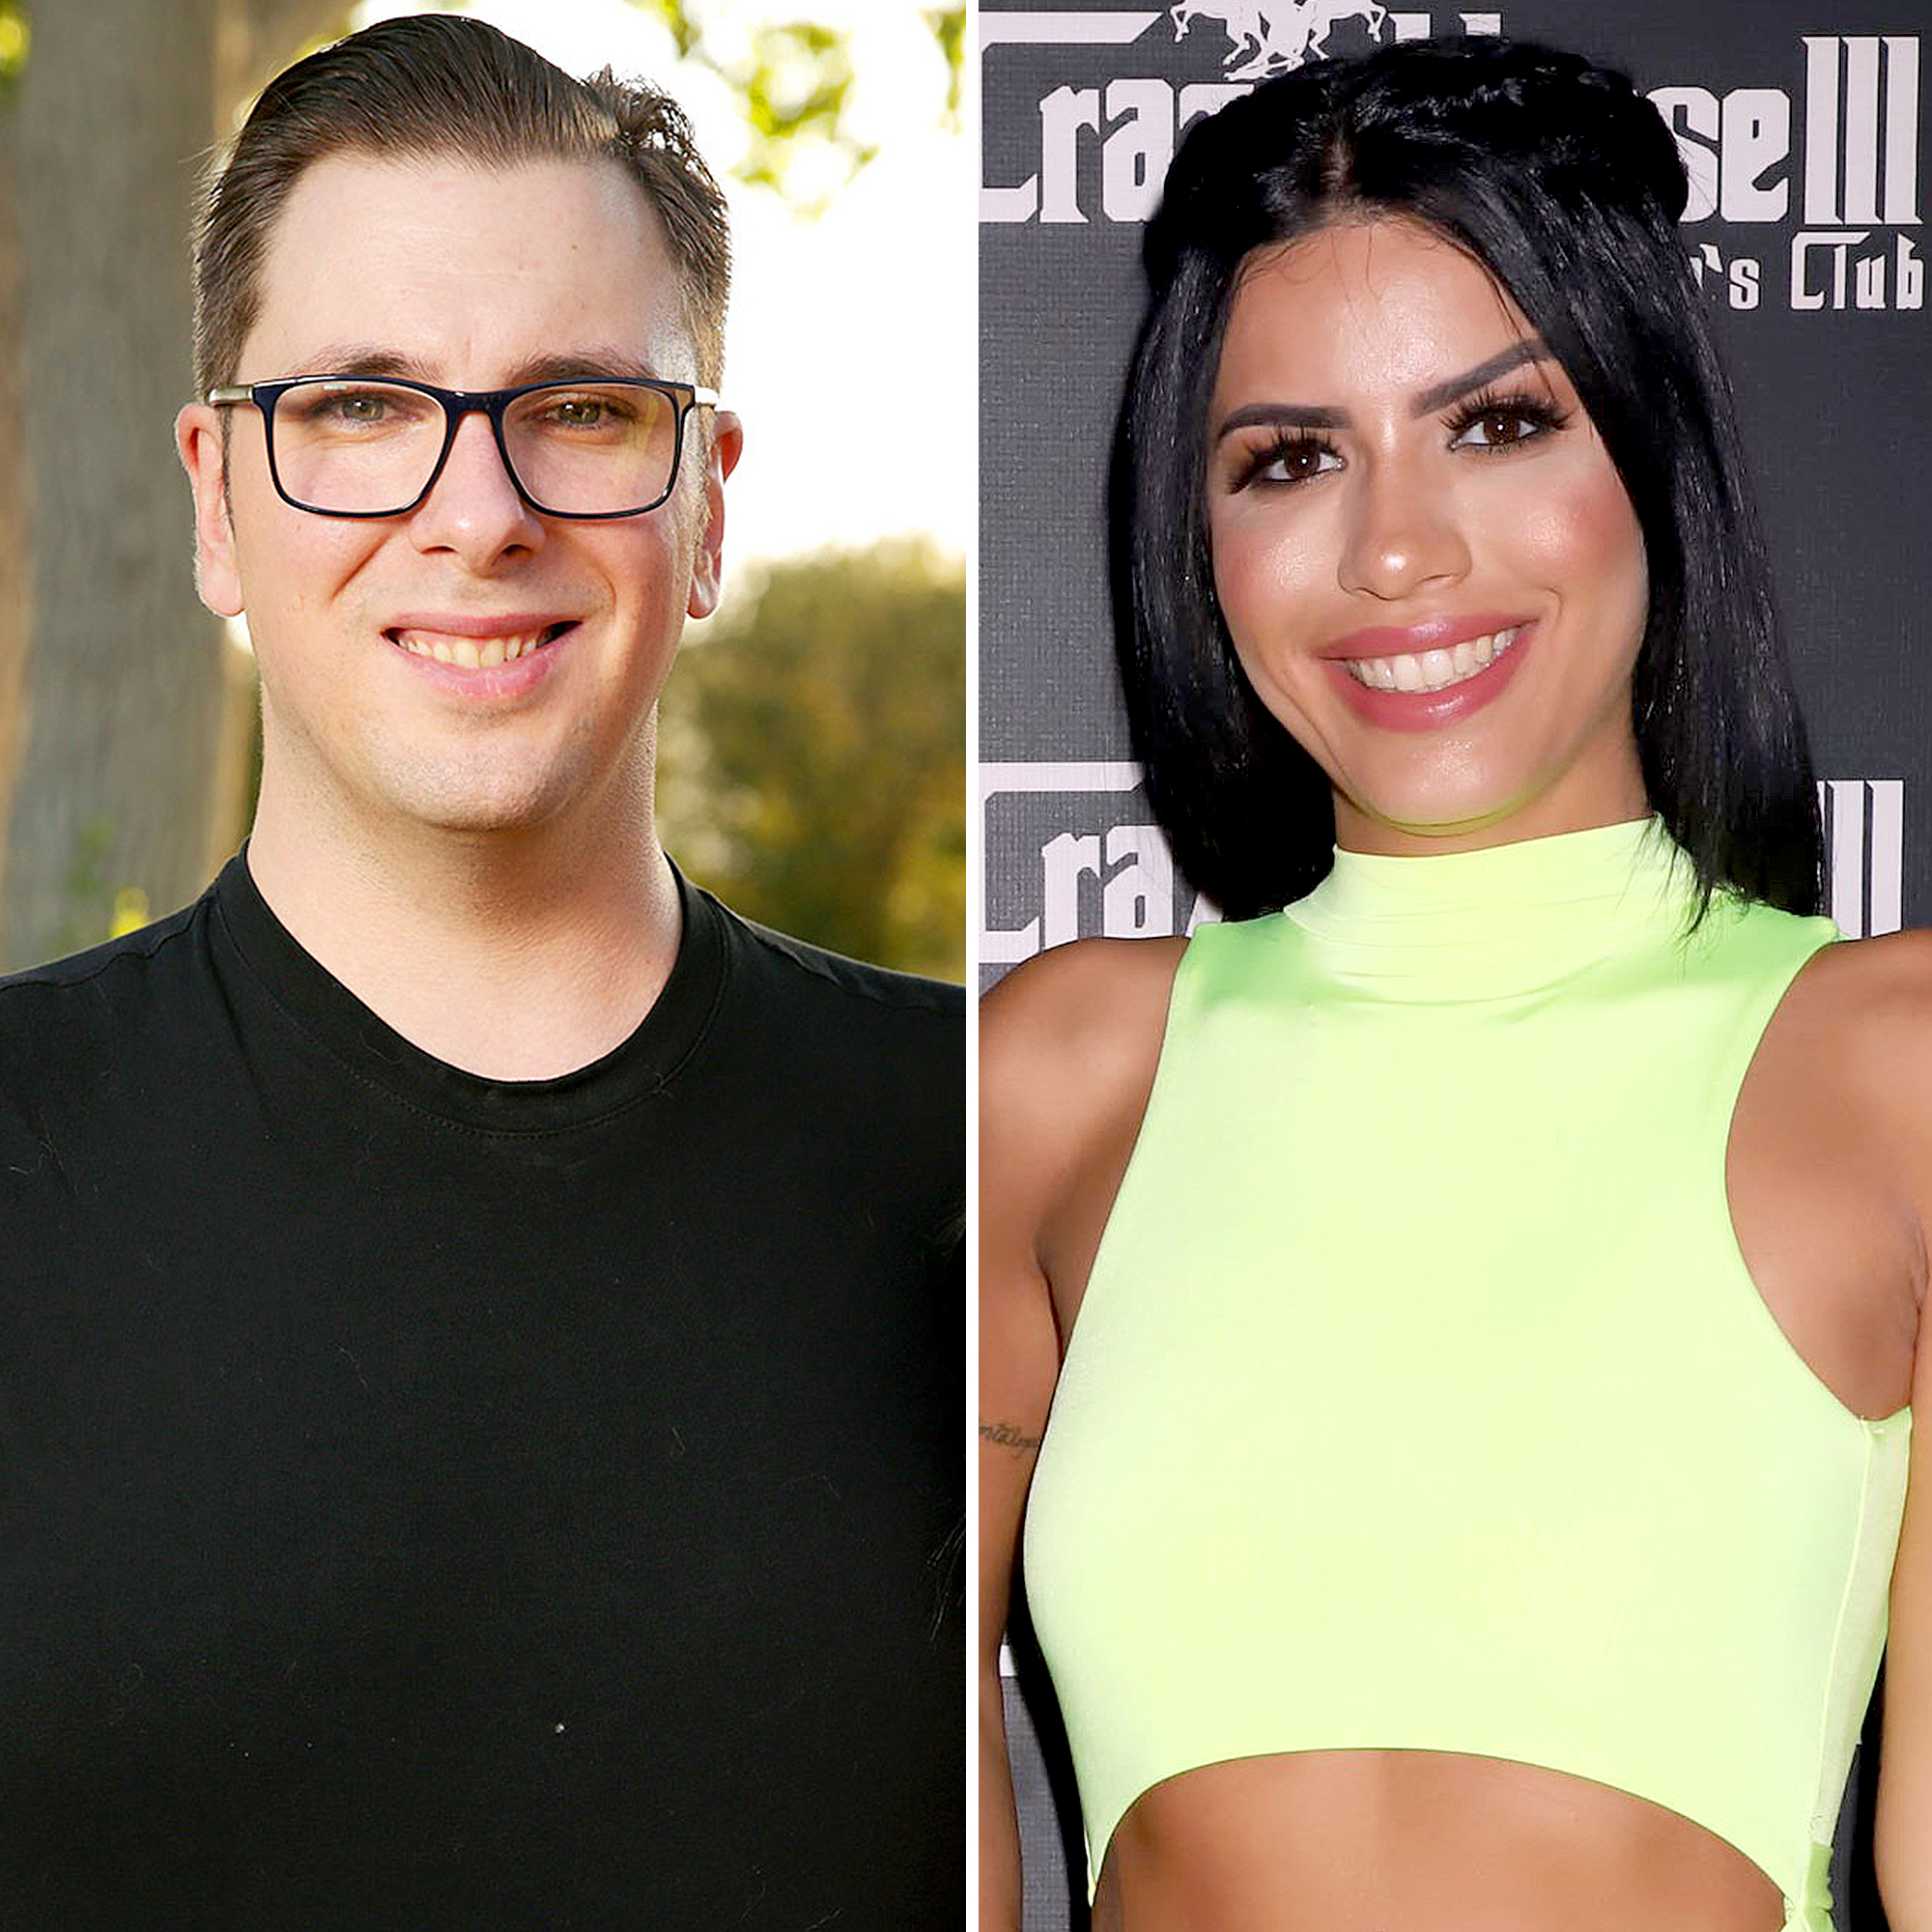 90 Day Fiance's Colt Johnson Can't Keep Track of Ex-Wife Larissa Dos Santos Lima's Plastic Surgery Procedures